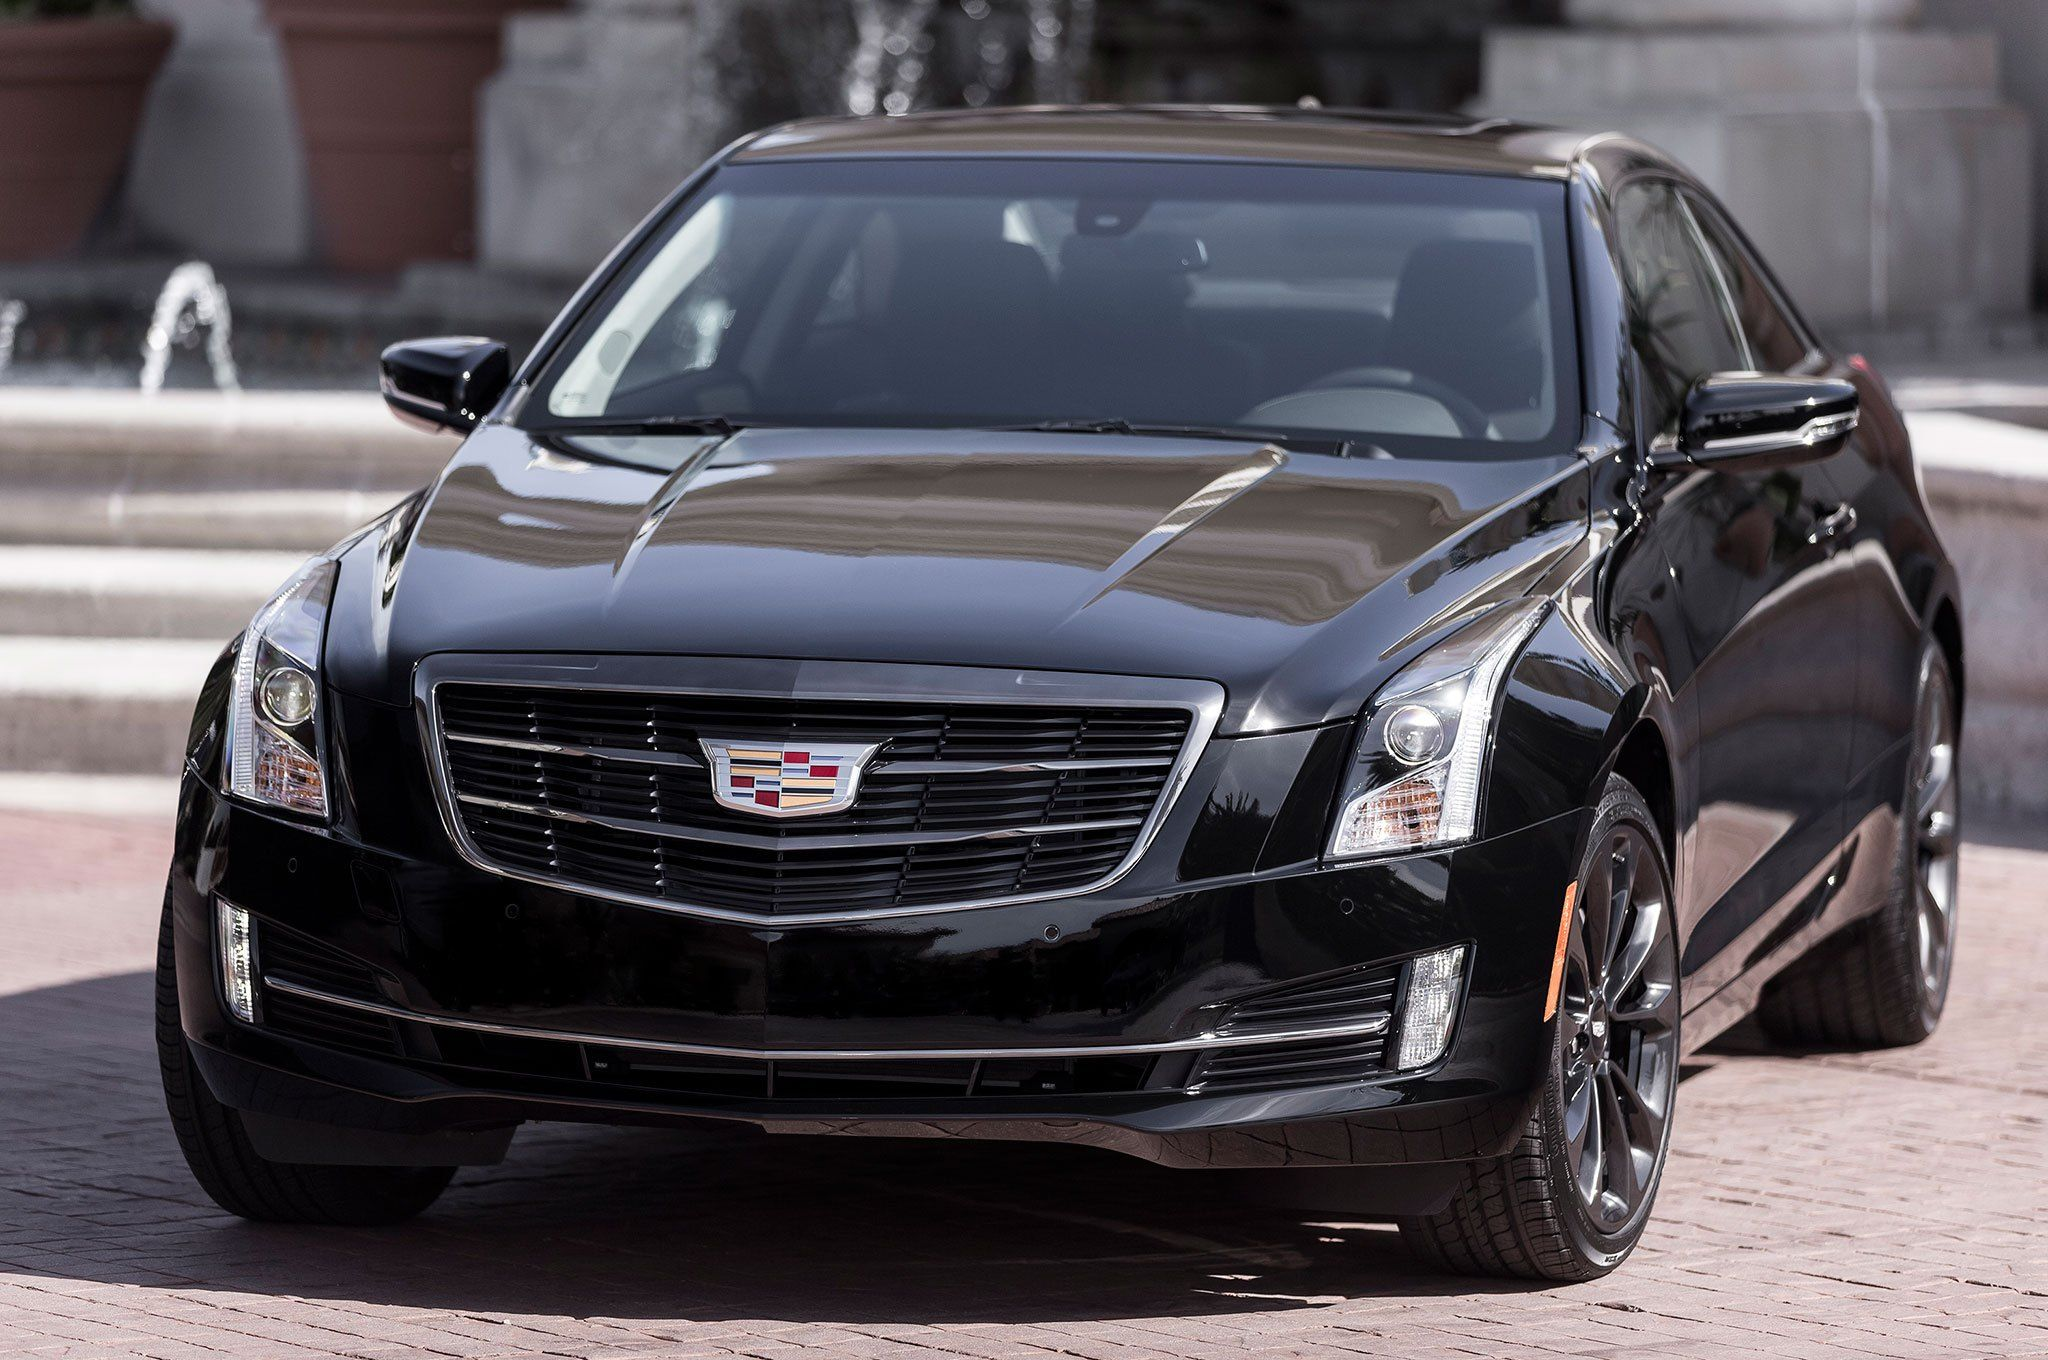 2018 cadillac ats black. Contemporary Ats 2018 Cadillac ATS Rumors Price For Cadillac Ats Black Pinterest